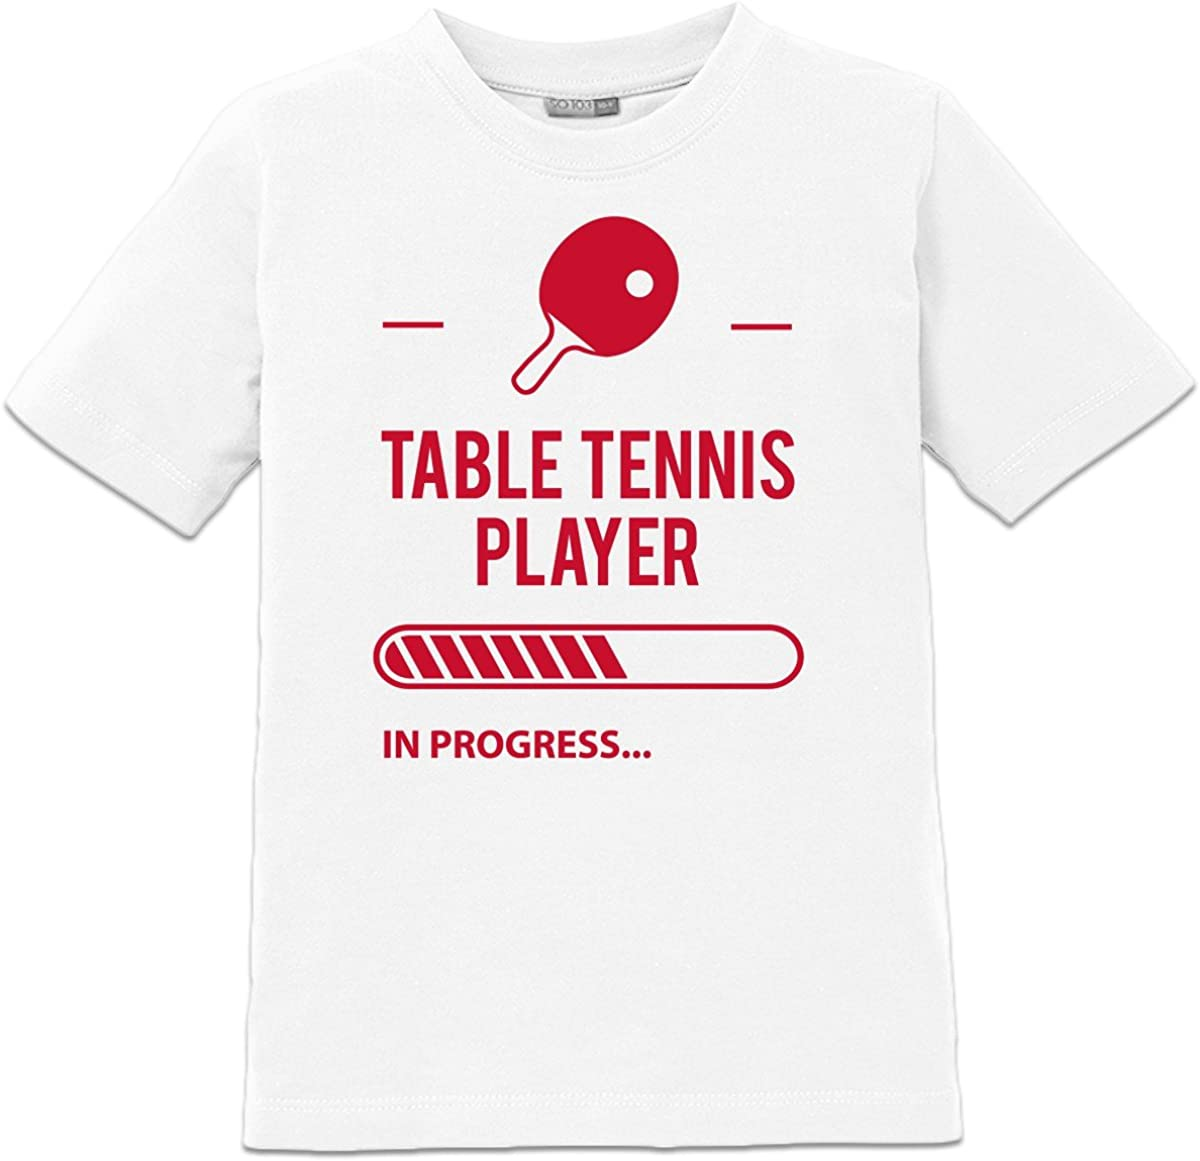 Camiseta de niño Table Tennis Player in Progress by Shirtcity